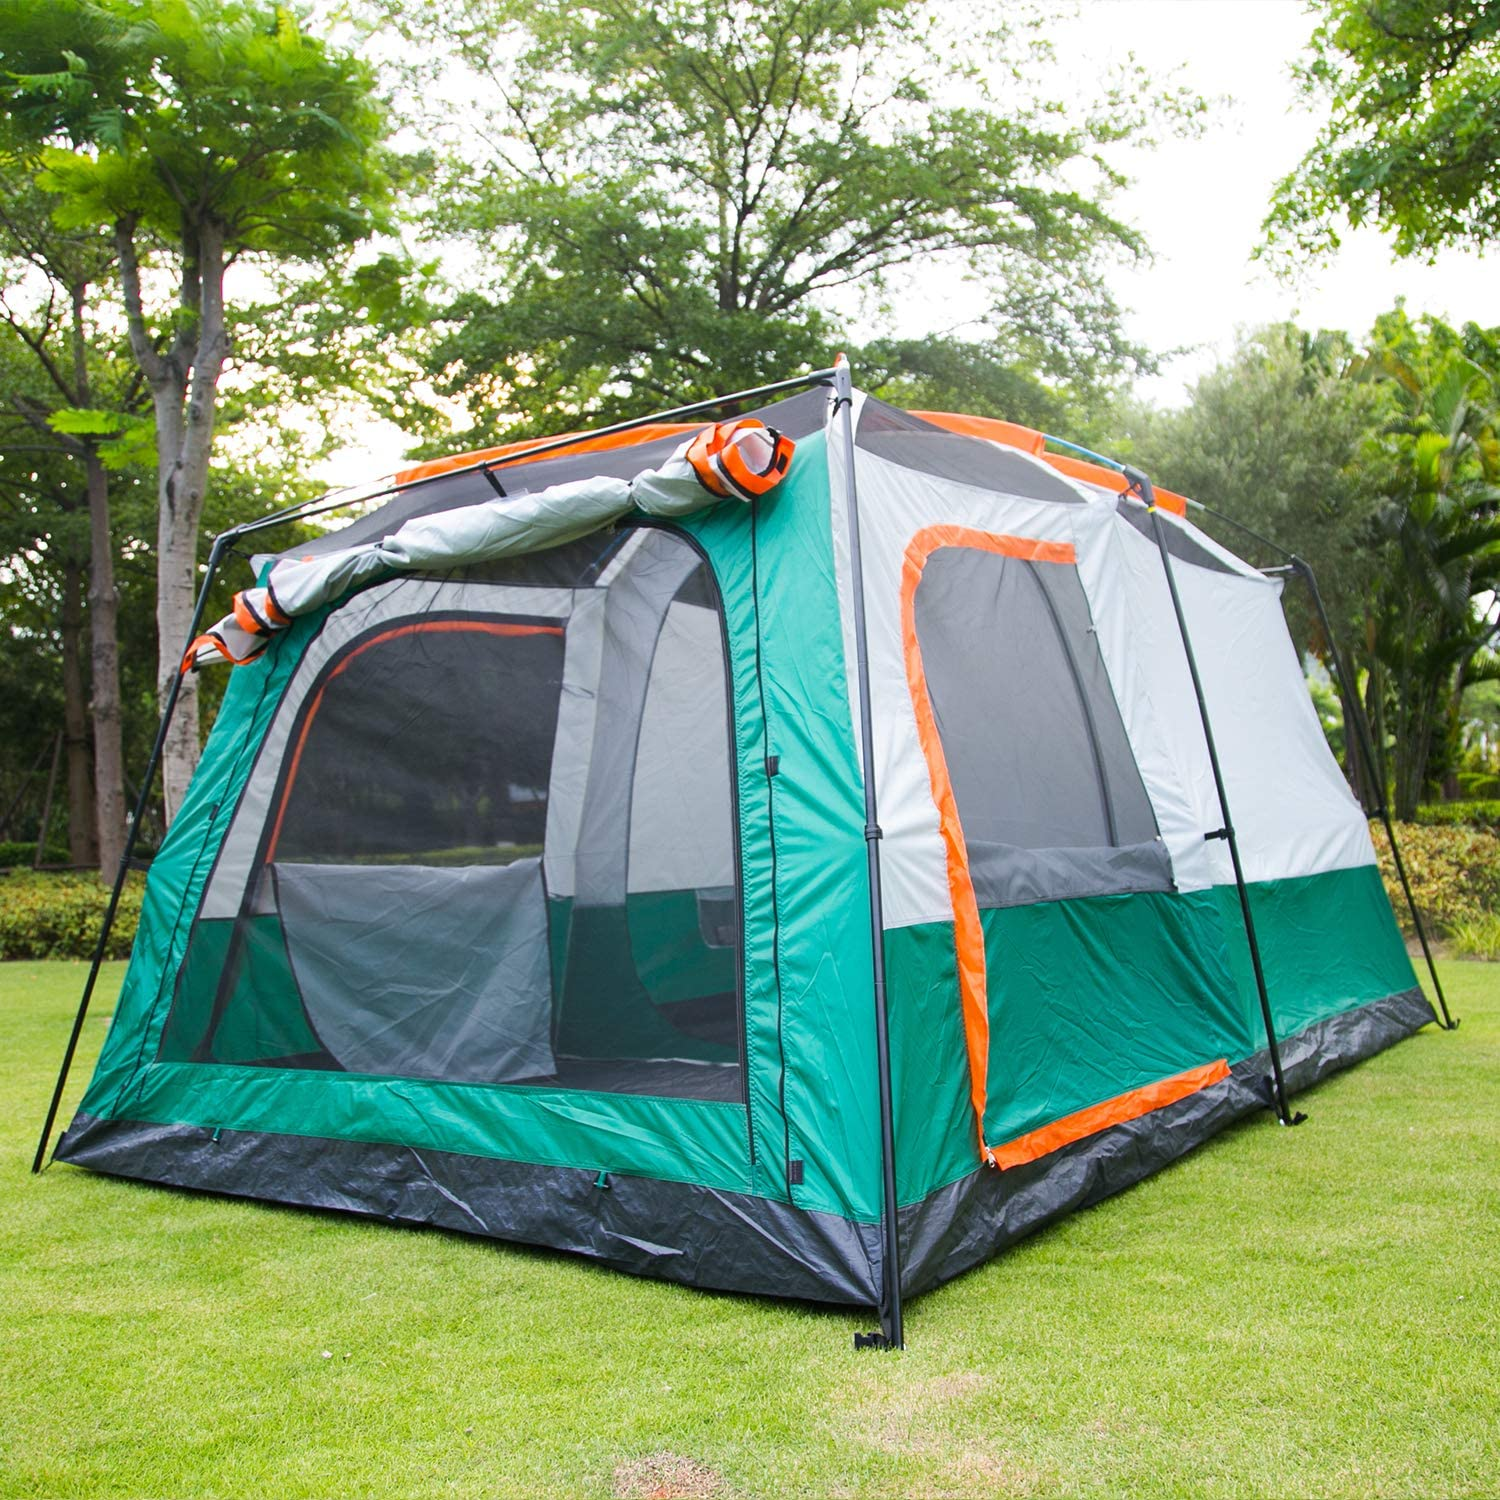 This is an image of a tent with wide screen doors and pitched on to a grassy lawn, trees at the back.